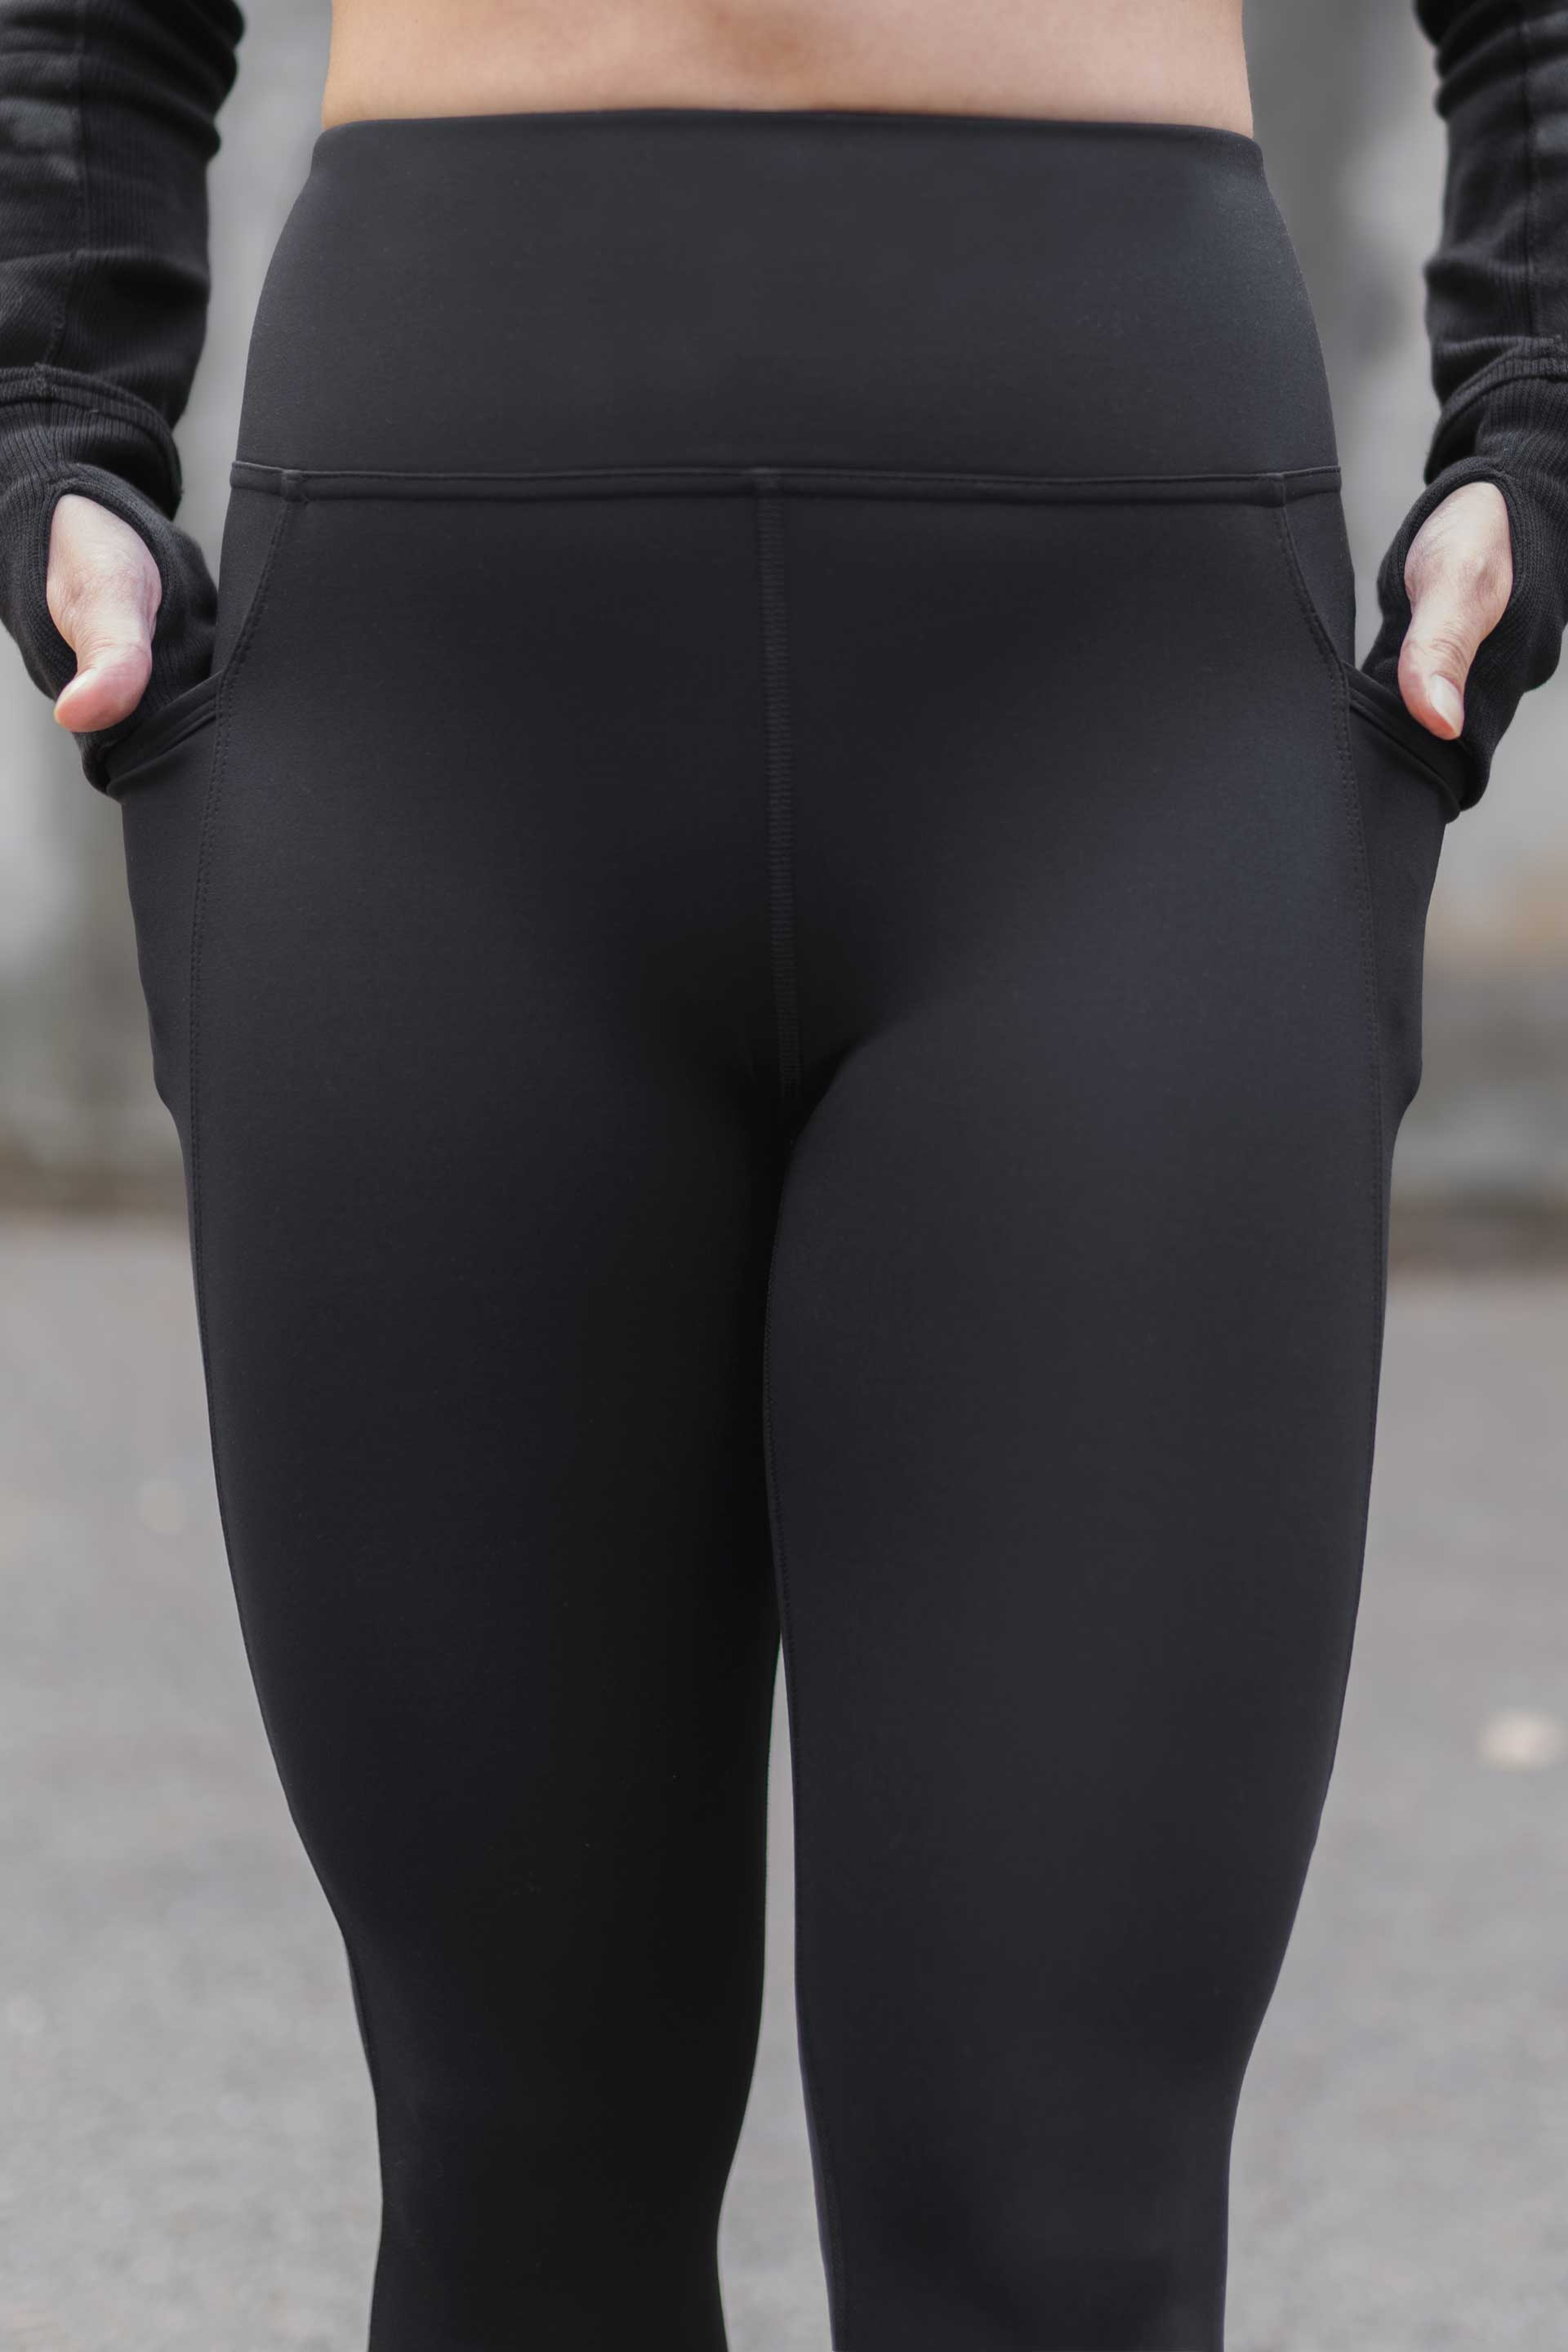 HIGH WAISTED SIDE POCKET 7/8 TIGHT ( RECYCLED PERFORMANCE KNIT ) - BLACK